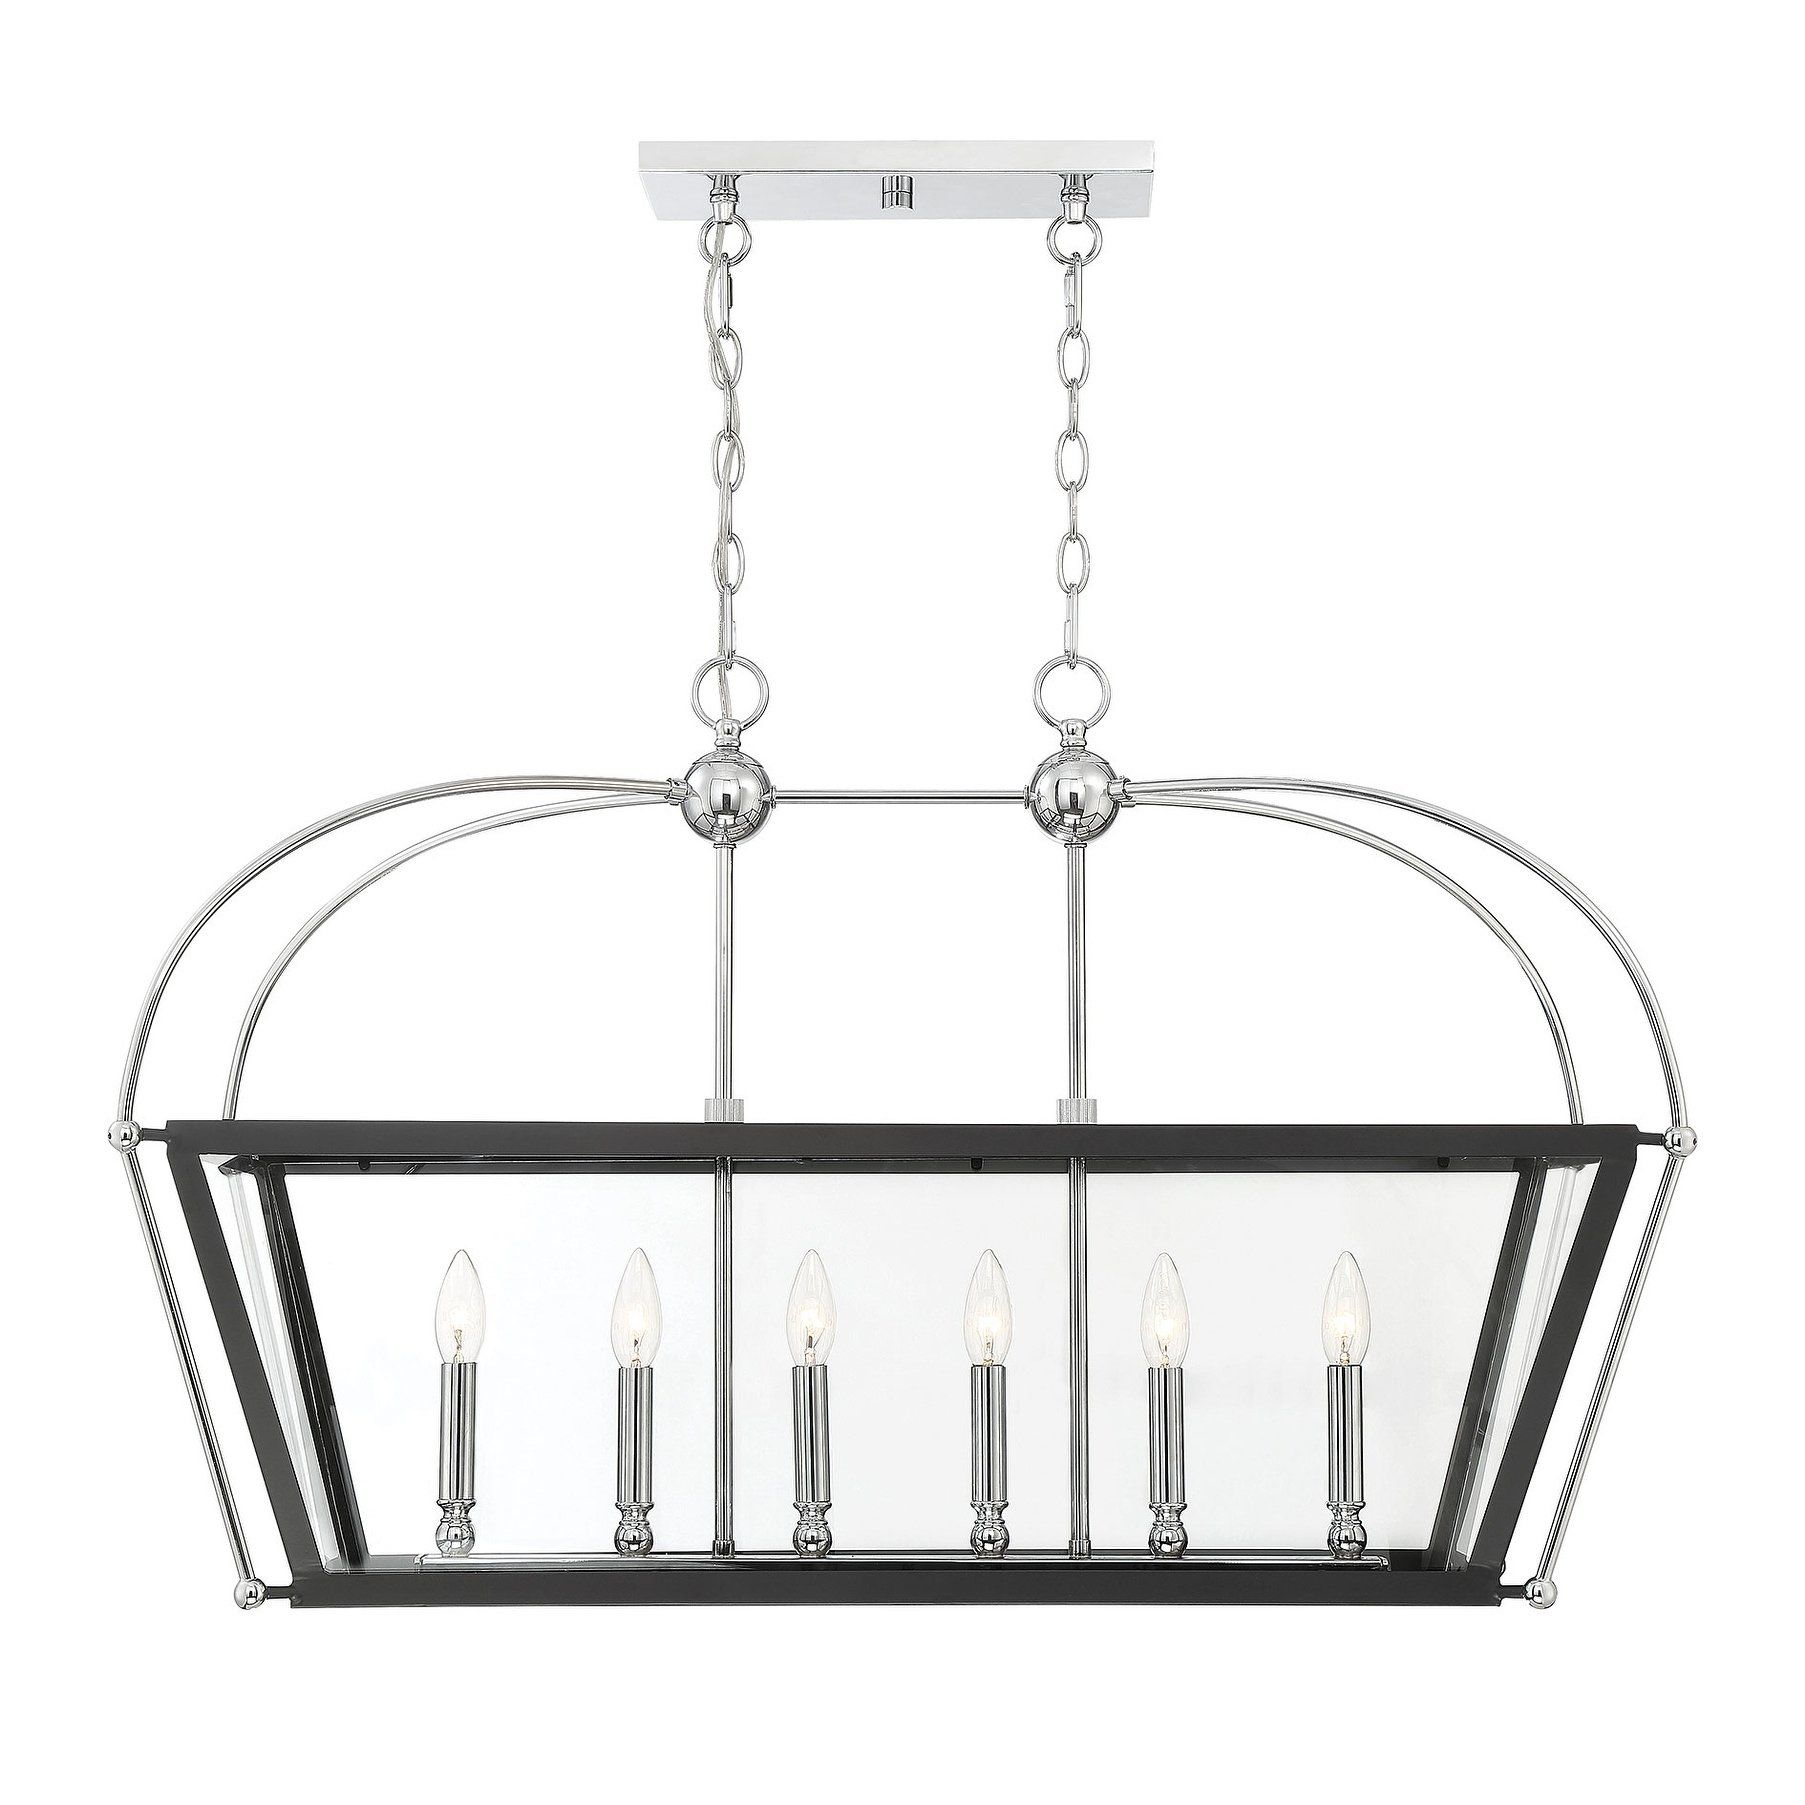 A Matte Black Kitchen Makes A Bold Statement In This: Dunbar Matte Black And Polished Chrome Accents 6-light